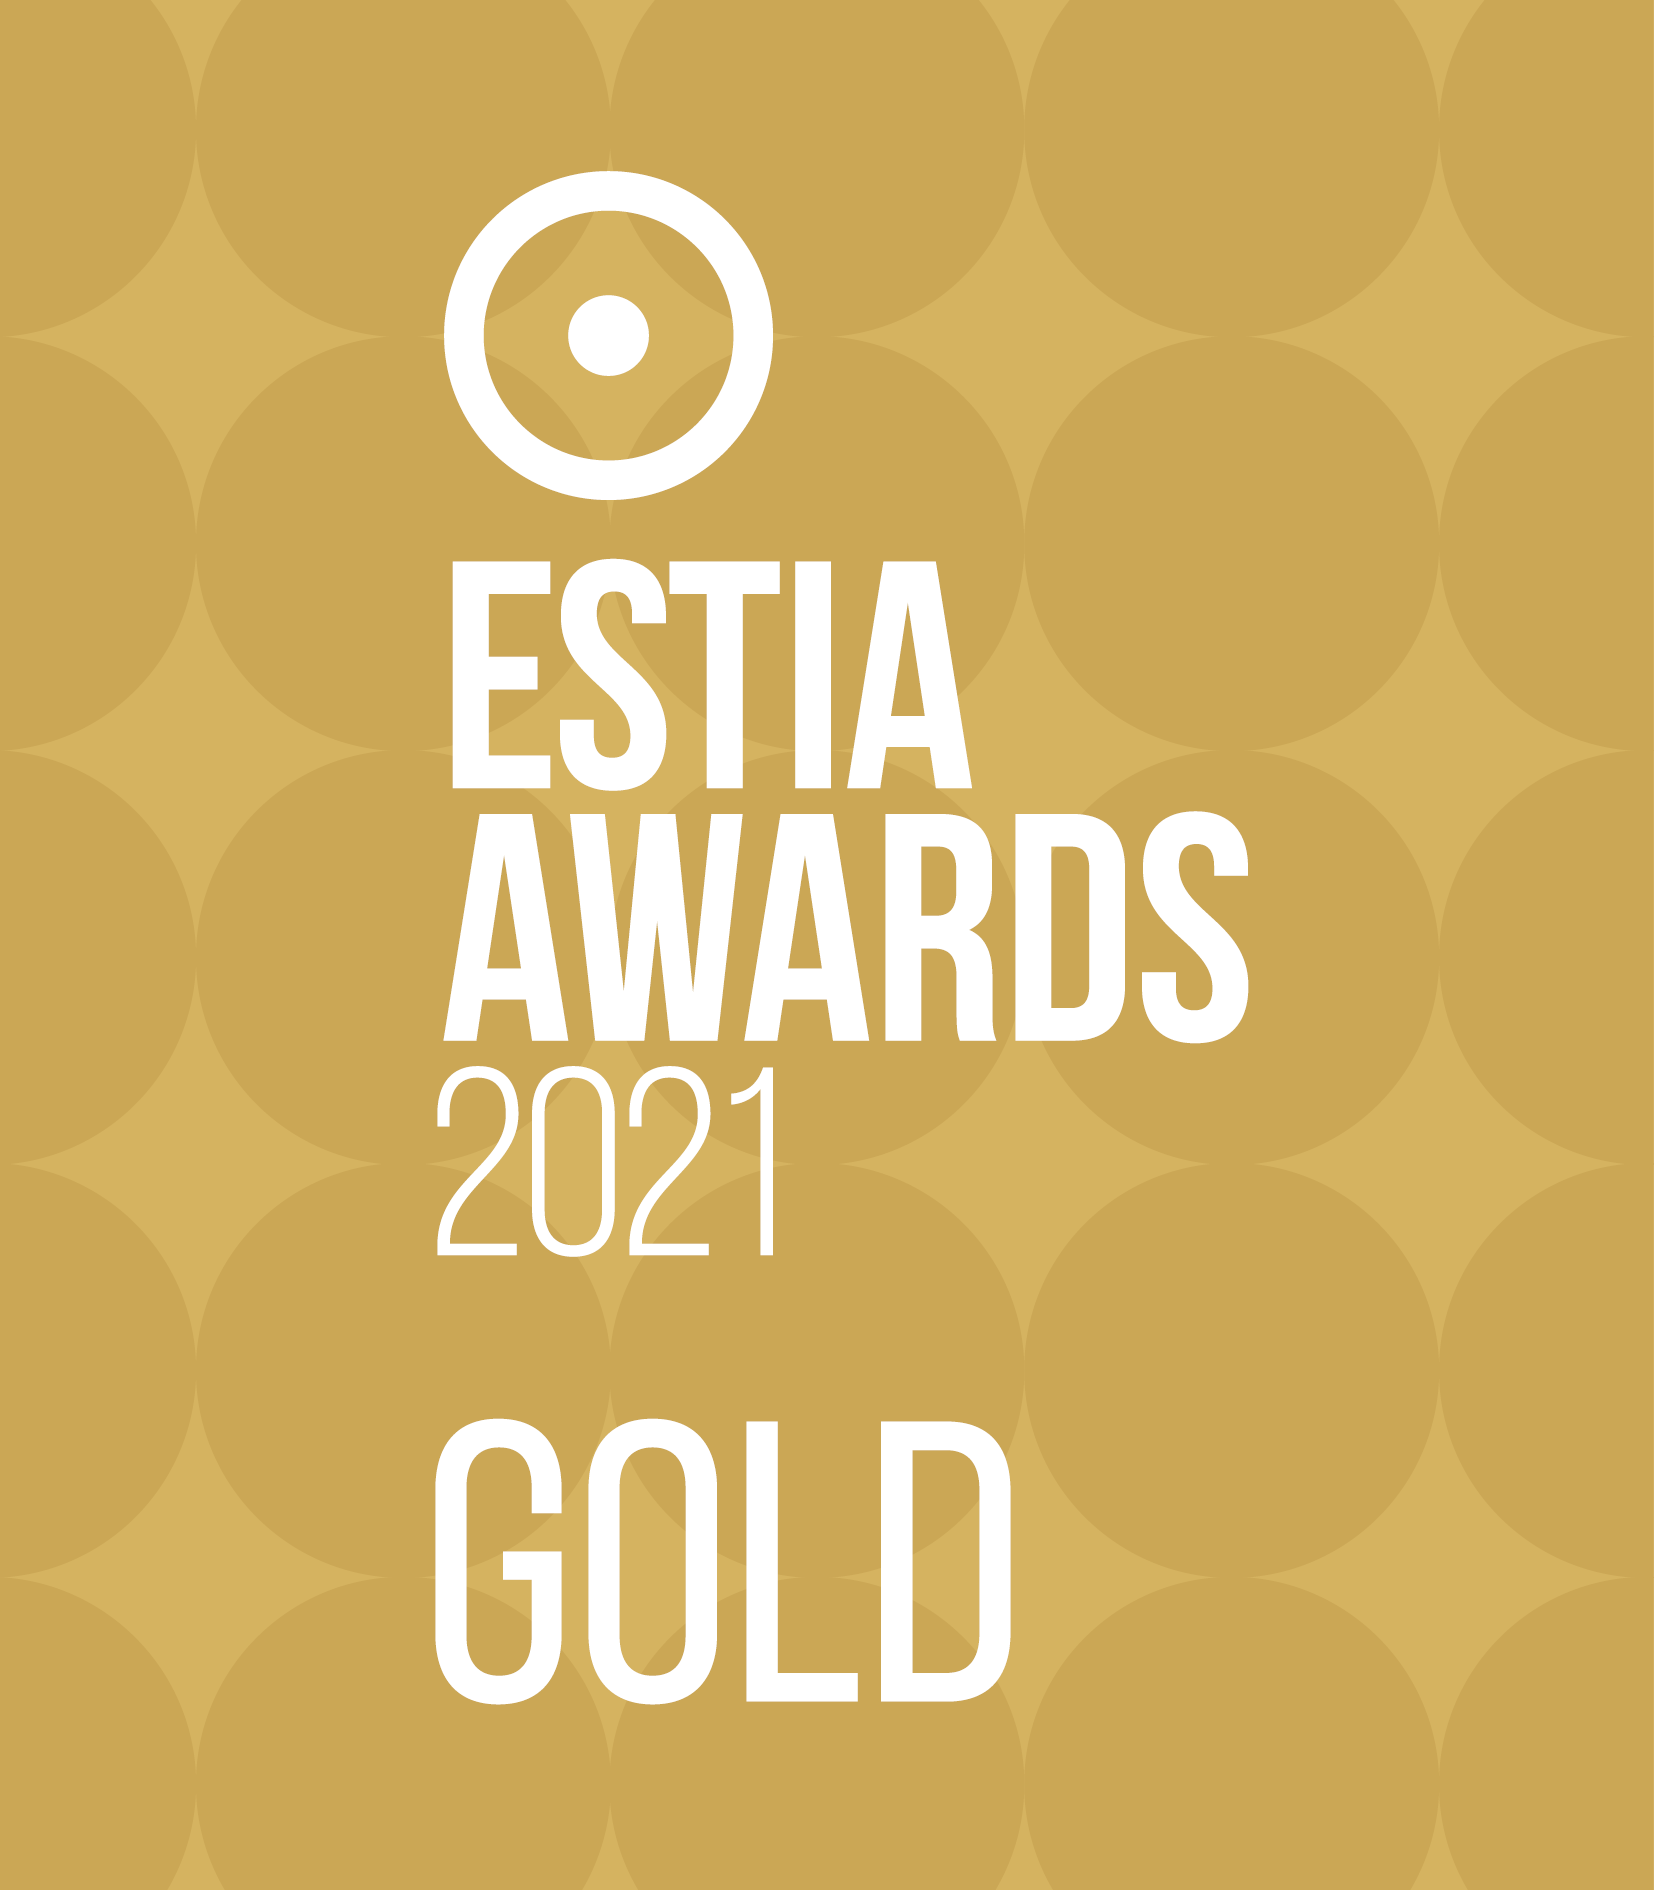 Estia Awards